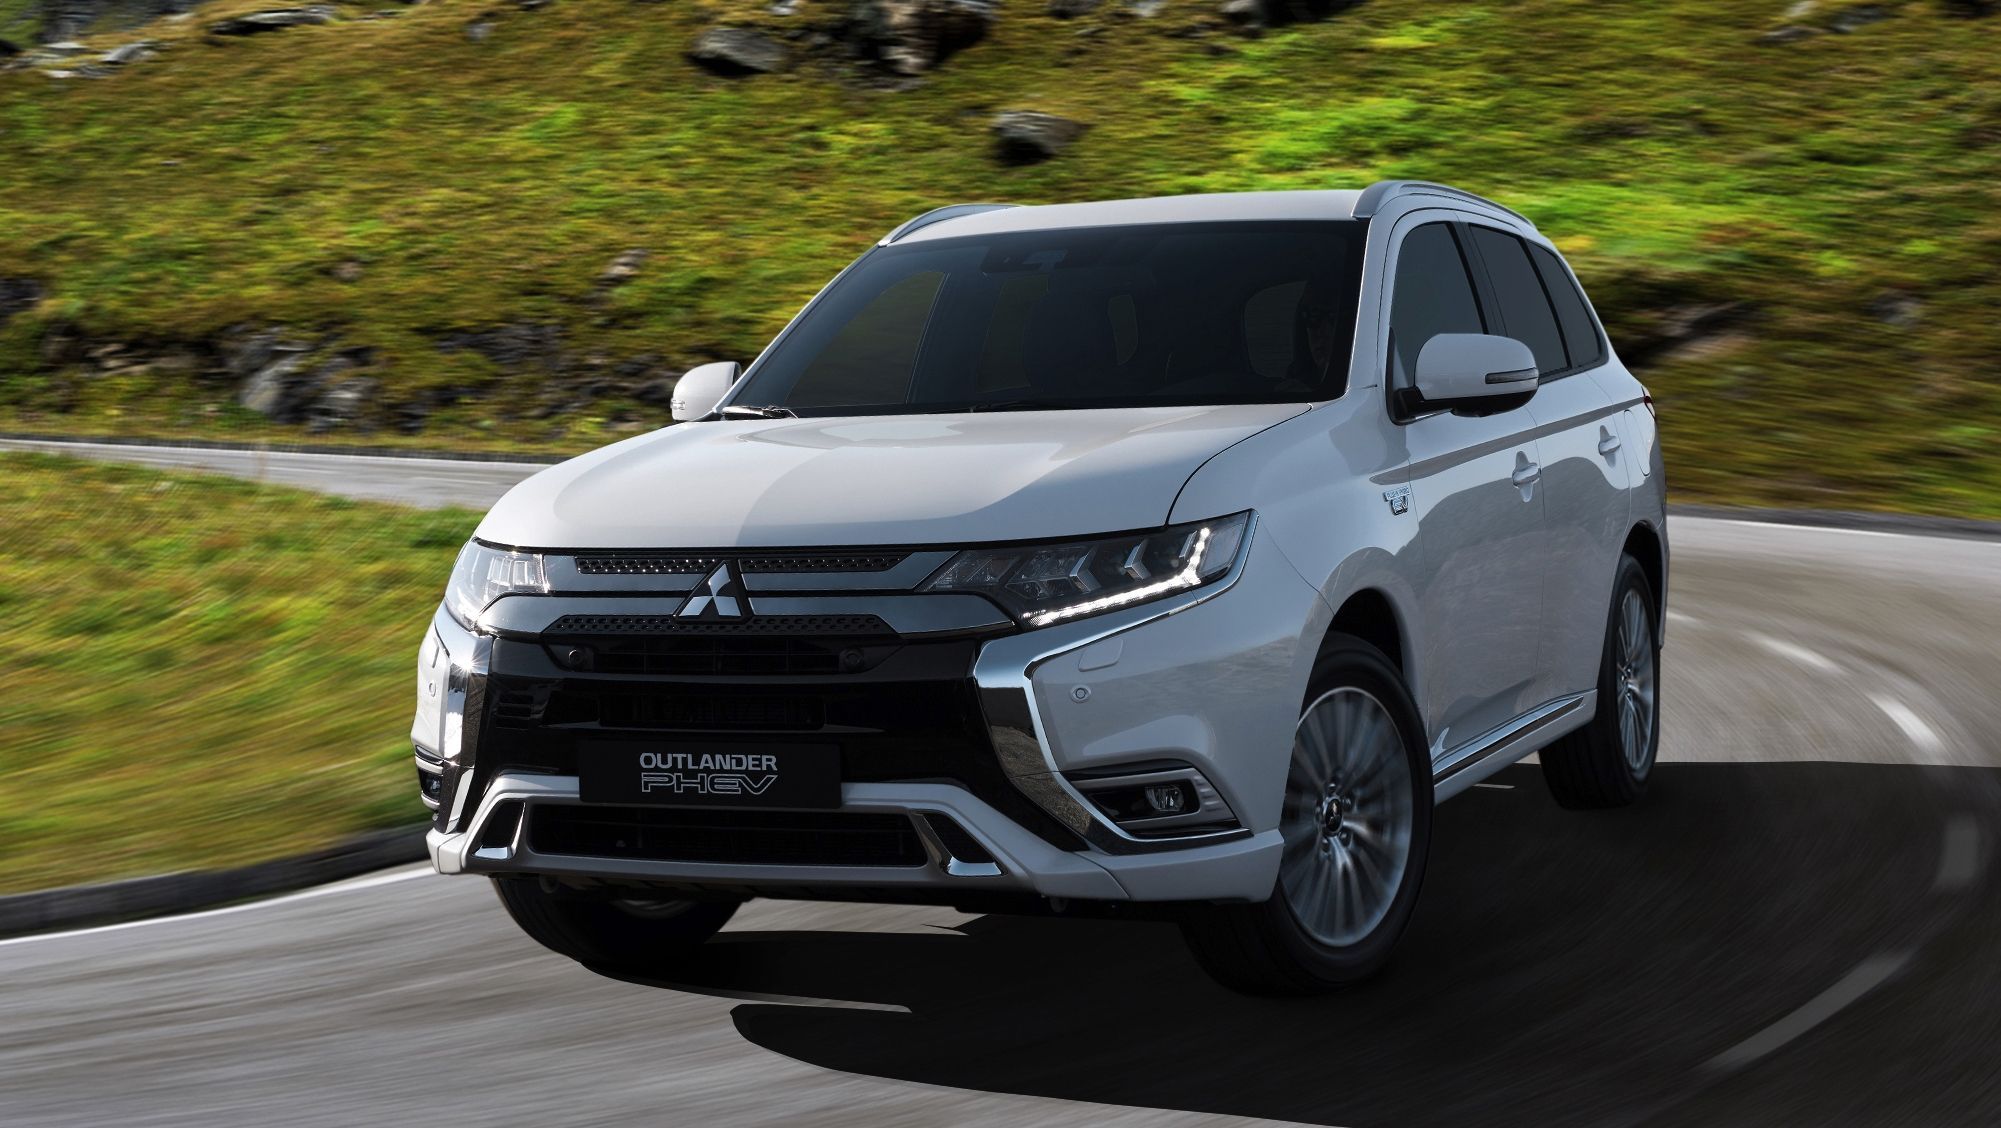 Mitsubishi To Showcase New Outlander Phev In Geneva With Better Tech Revised Looks Outlander Phev Mitsubishi Suv Mitsubishi Outlander